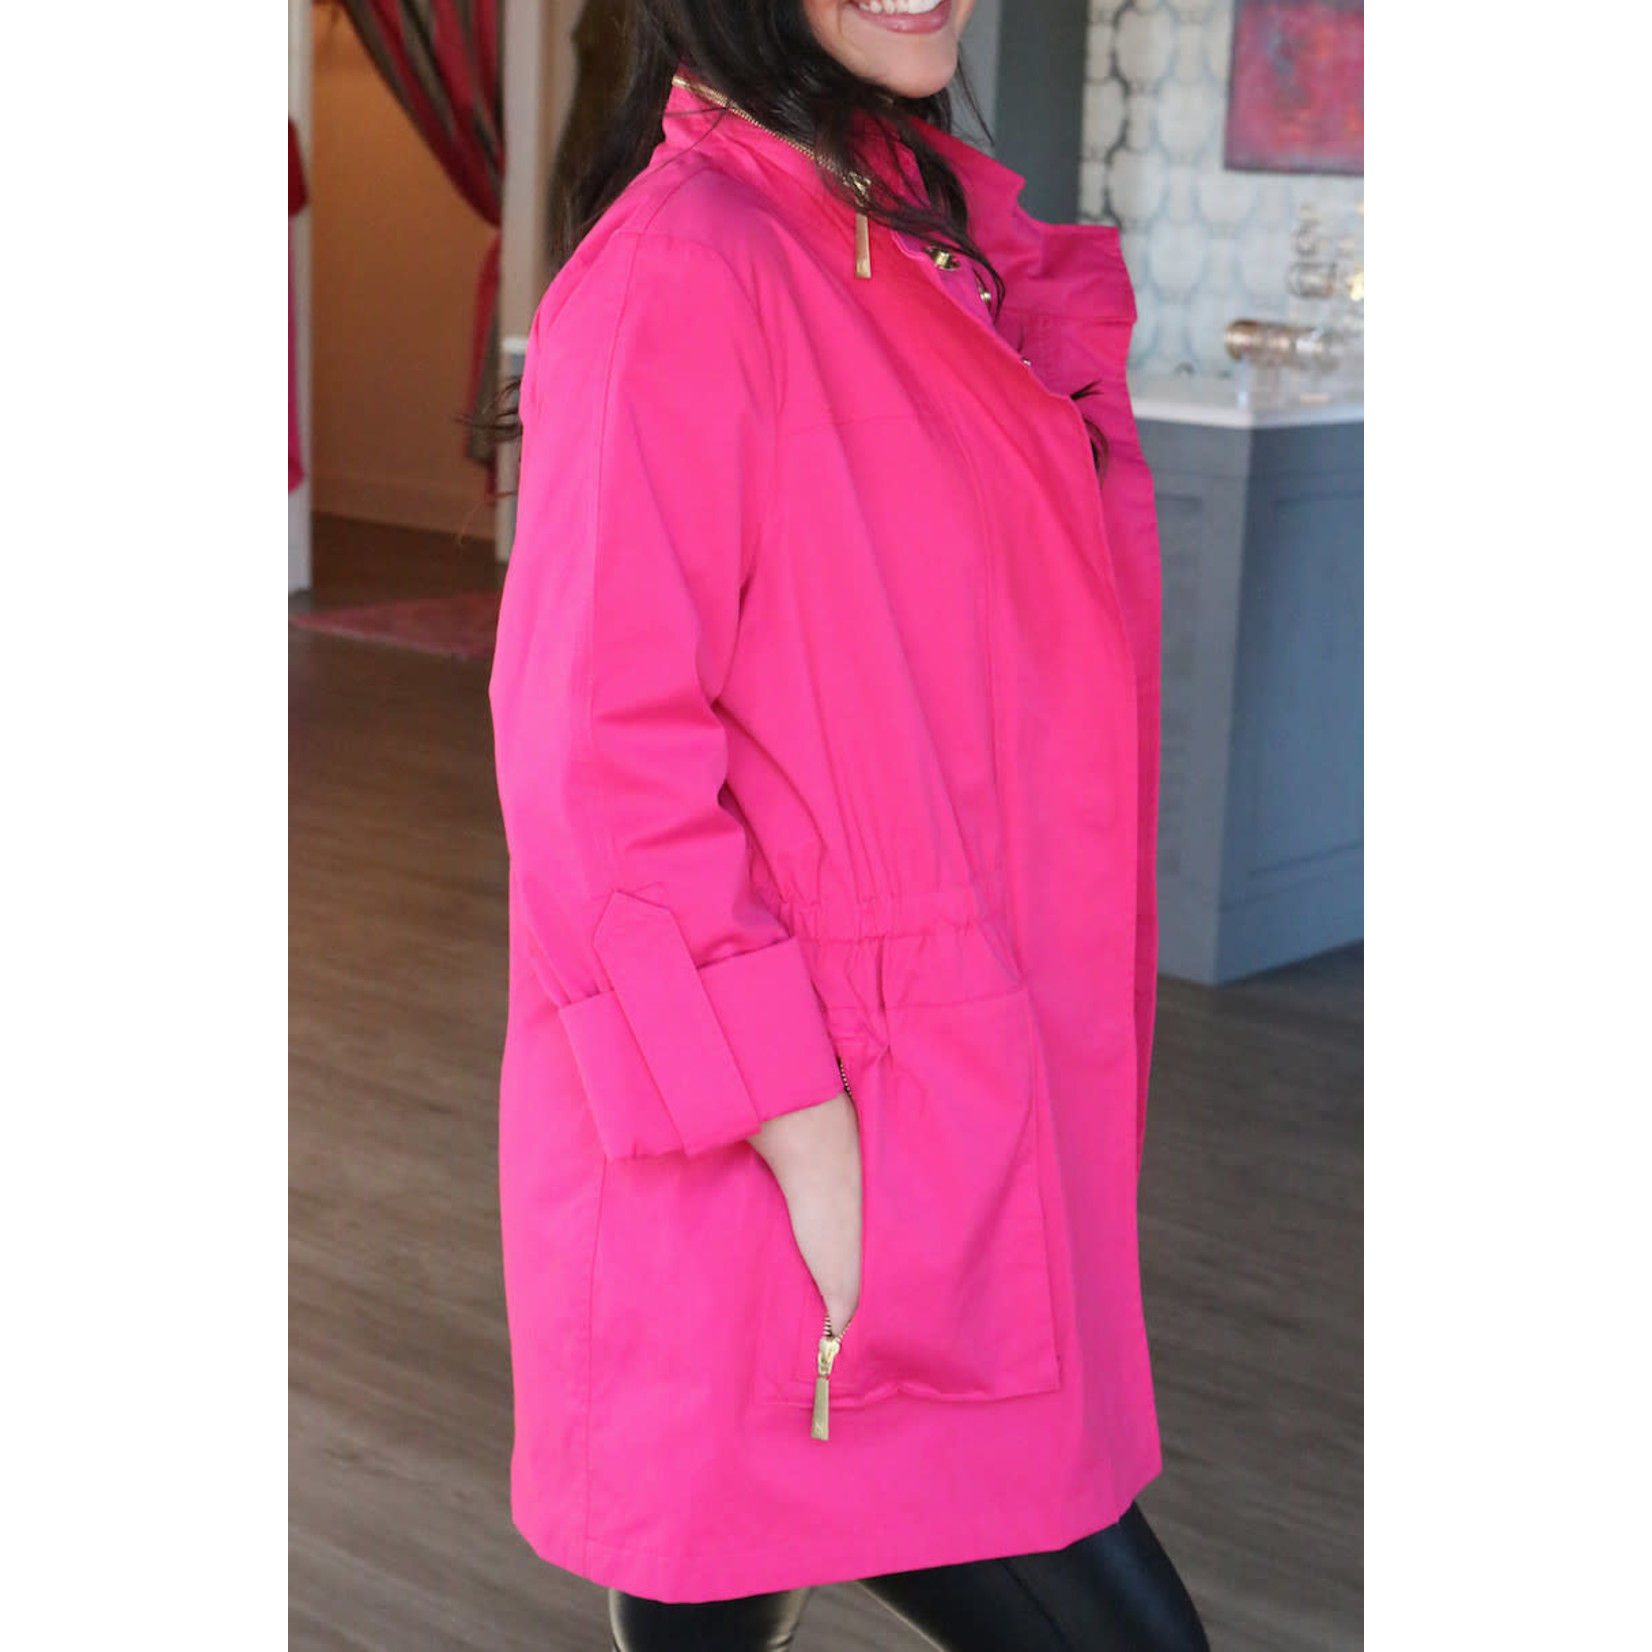 Hooded Rain Jacket in Fuchsia Lrg